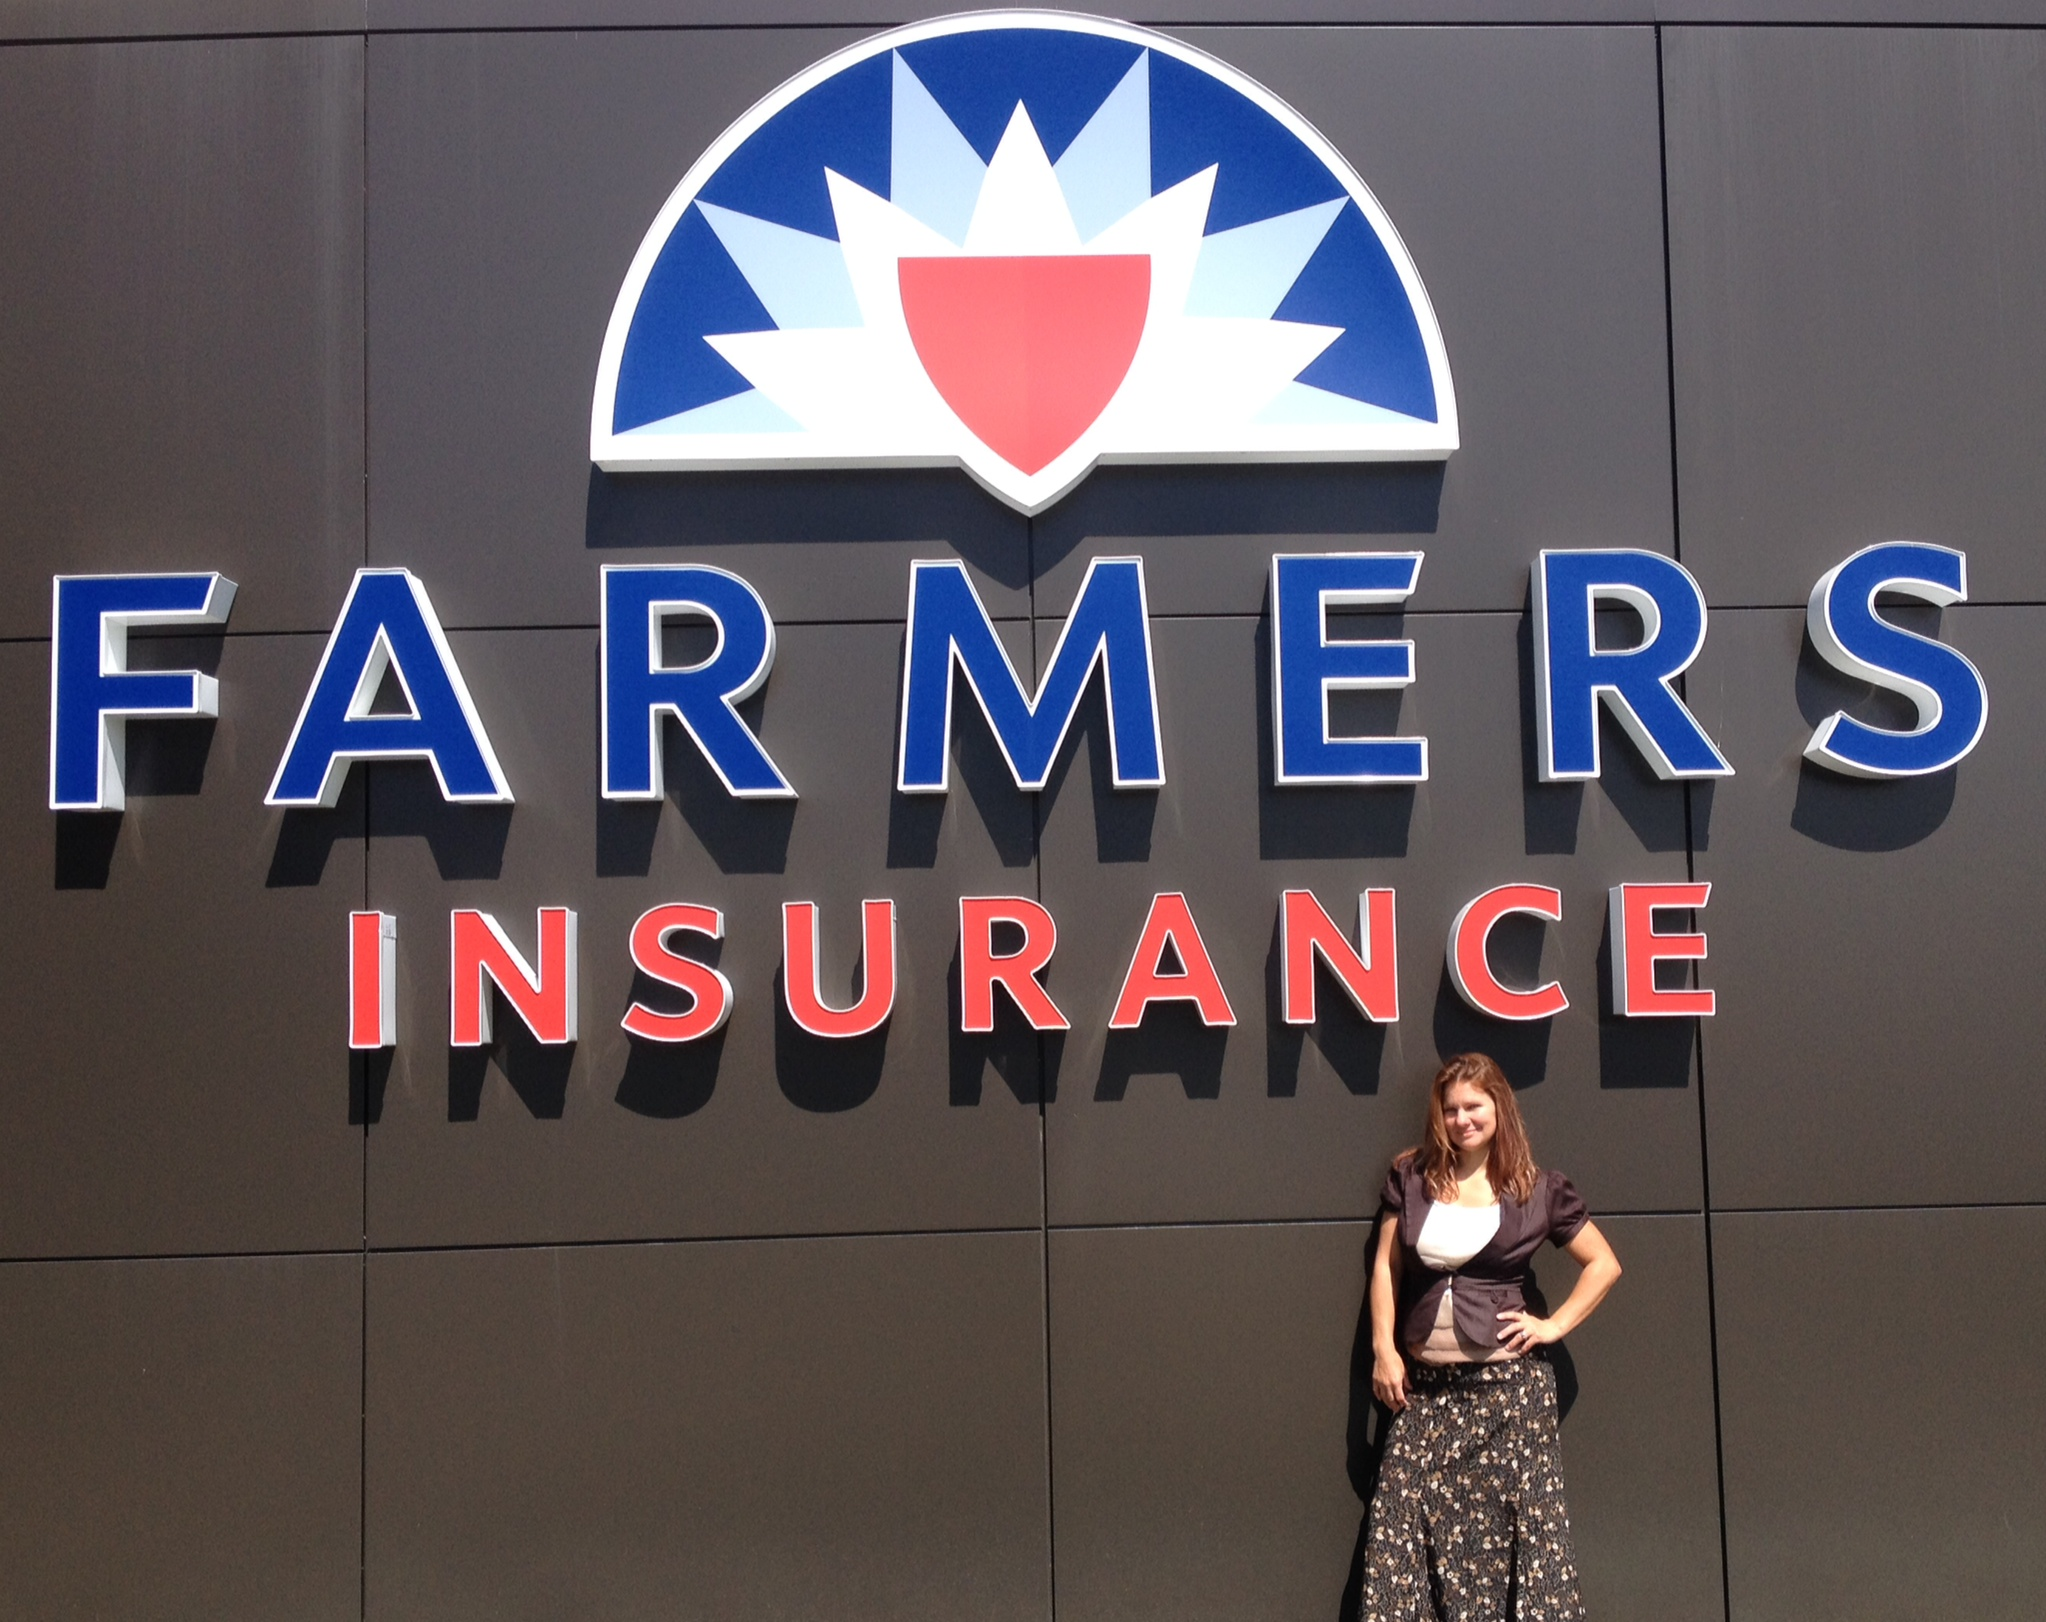 Farmers Homeowners Insurance >> Farmers Insurance - Tanya Burleson Coupons near me in Dover, OH 44622 | 8coupons